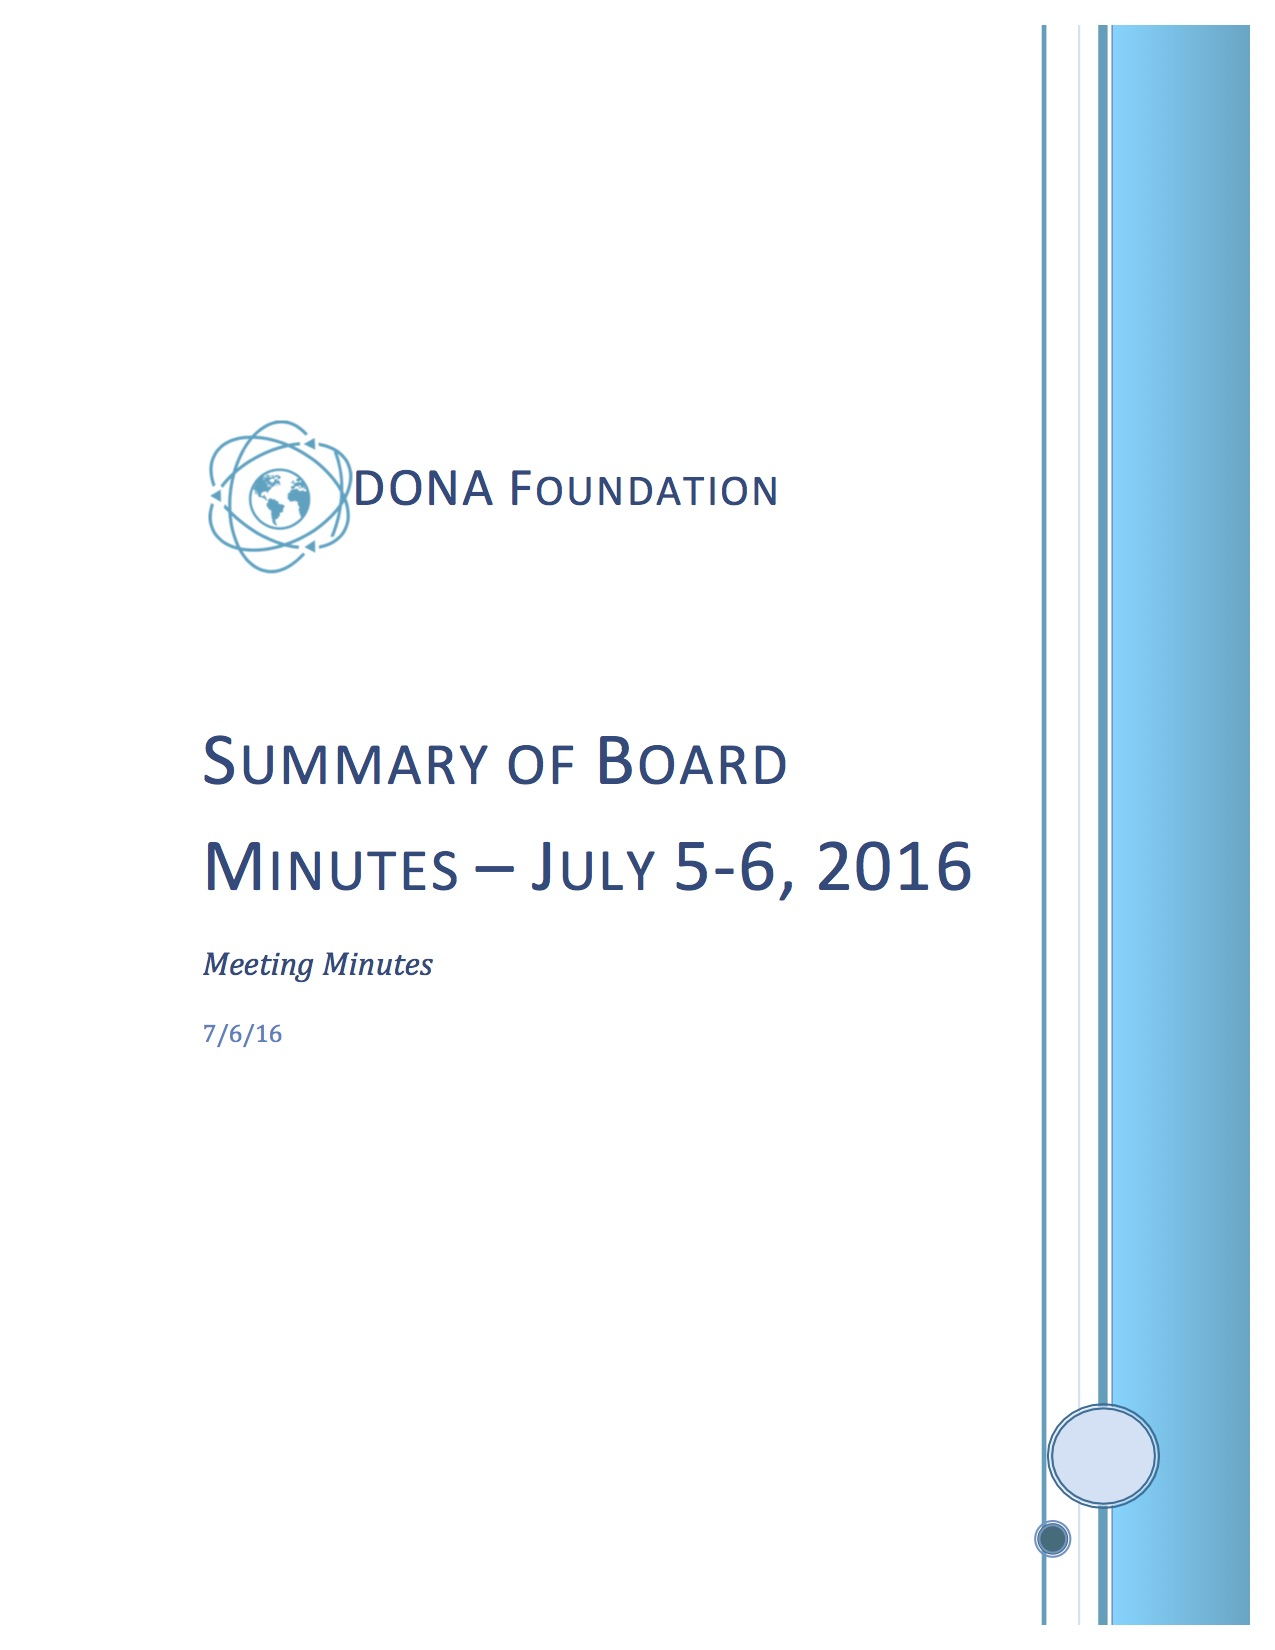 Summary of Board Minutes July 5-6, 2016